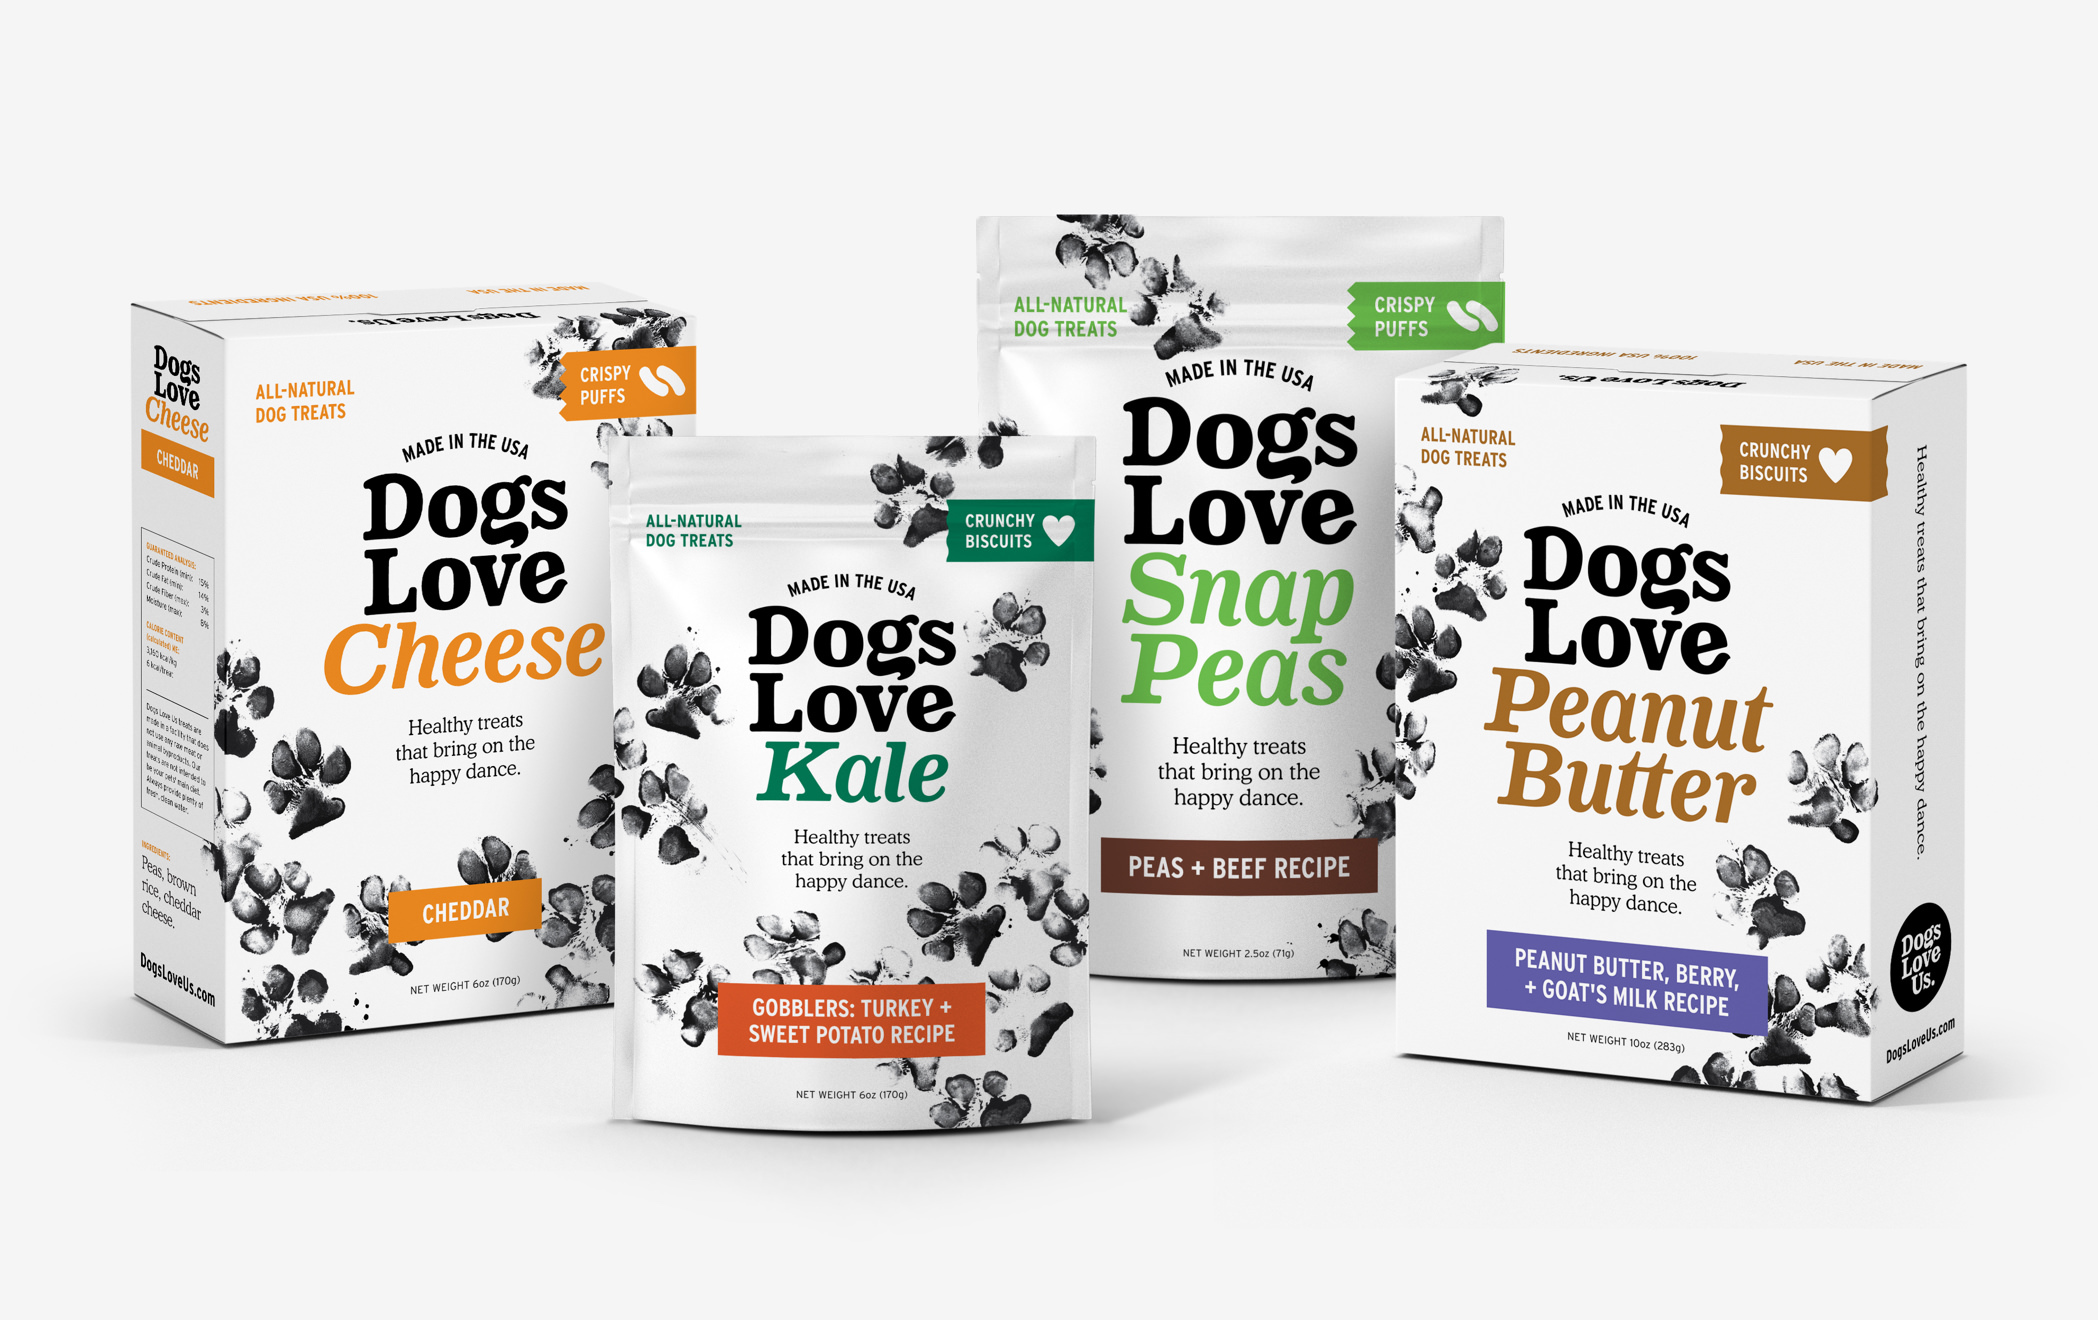 Four packages of Dogs Love Us treats, including cheese, kale, snap peas, and peanut butter flavors.